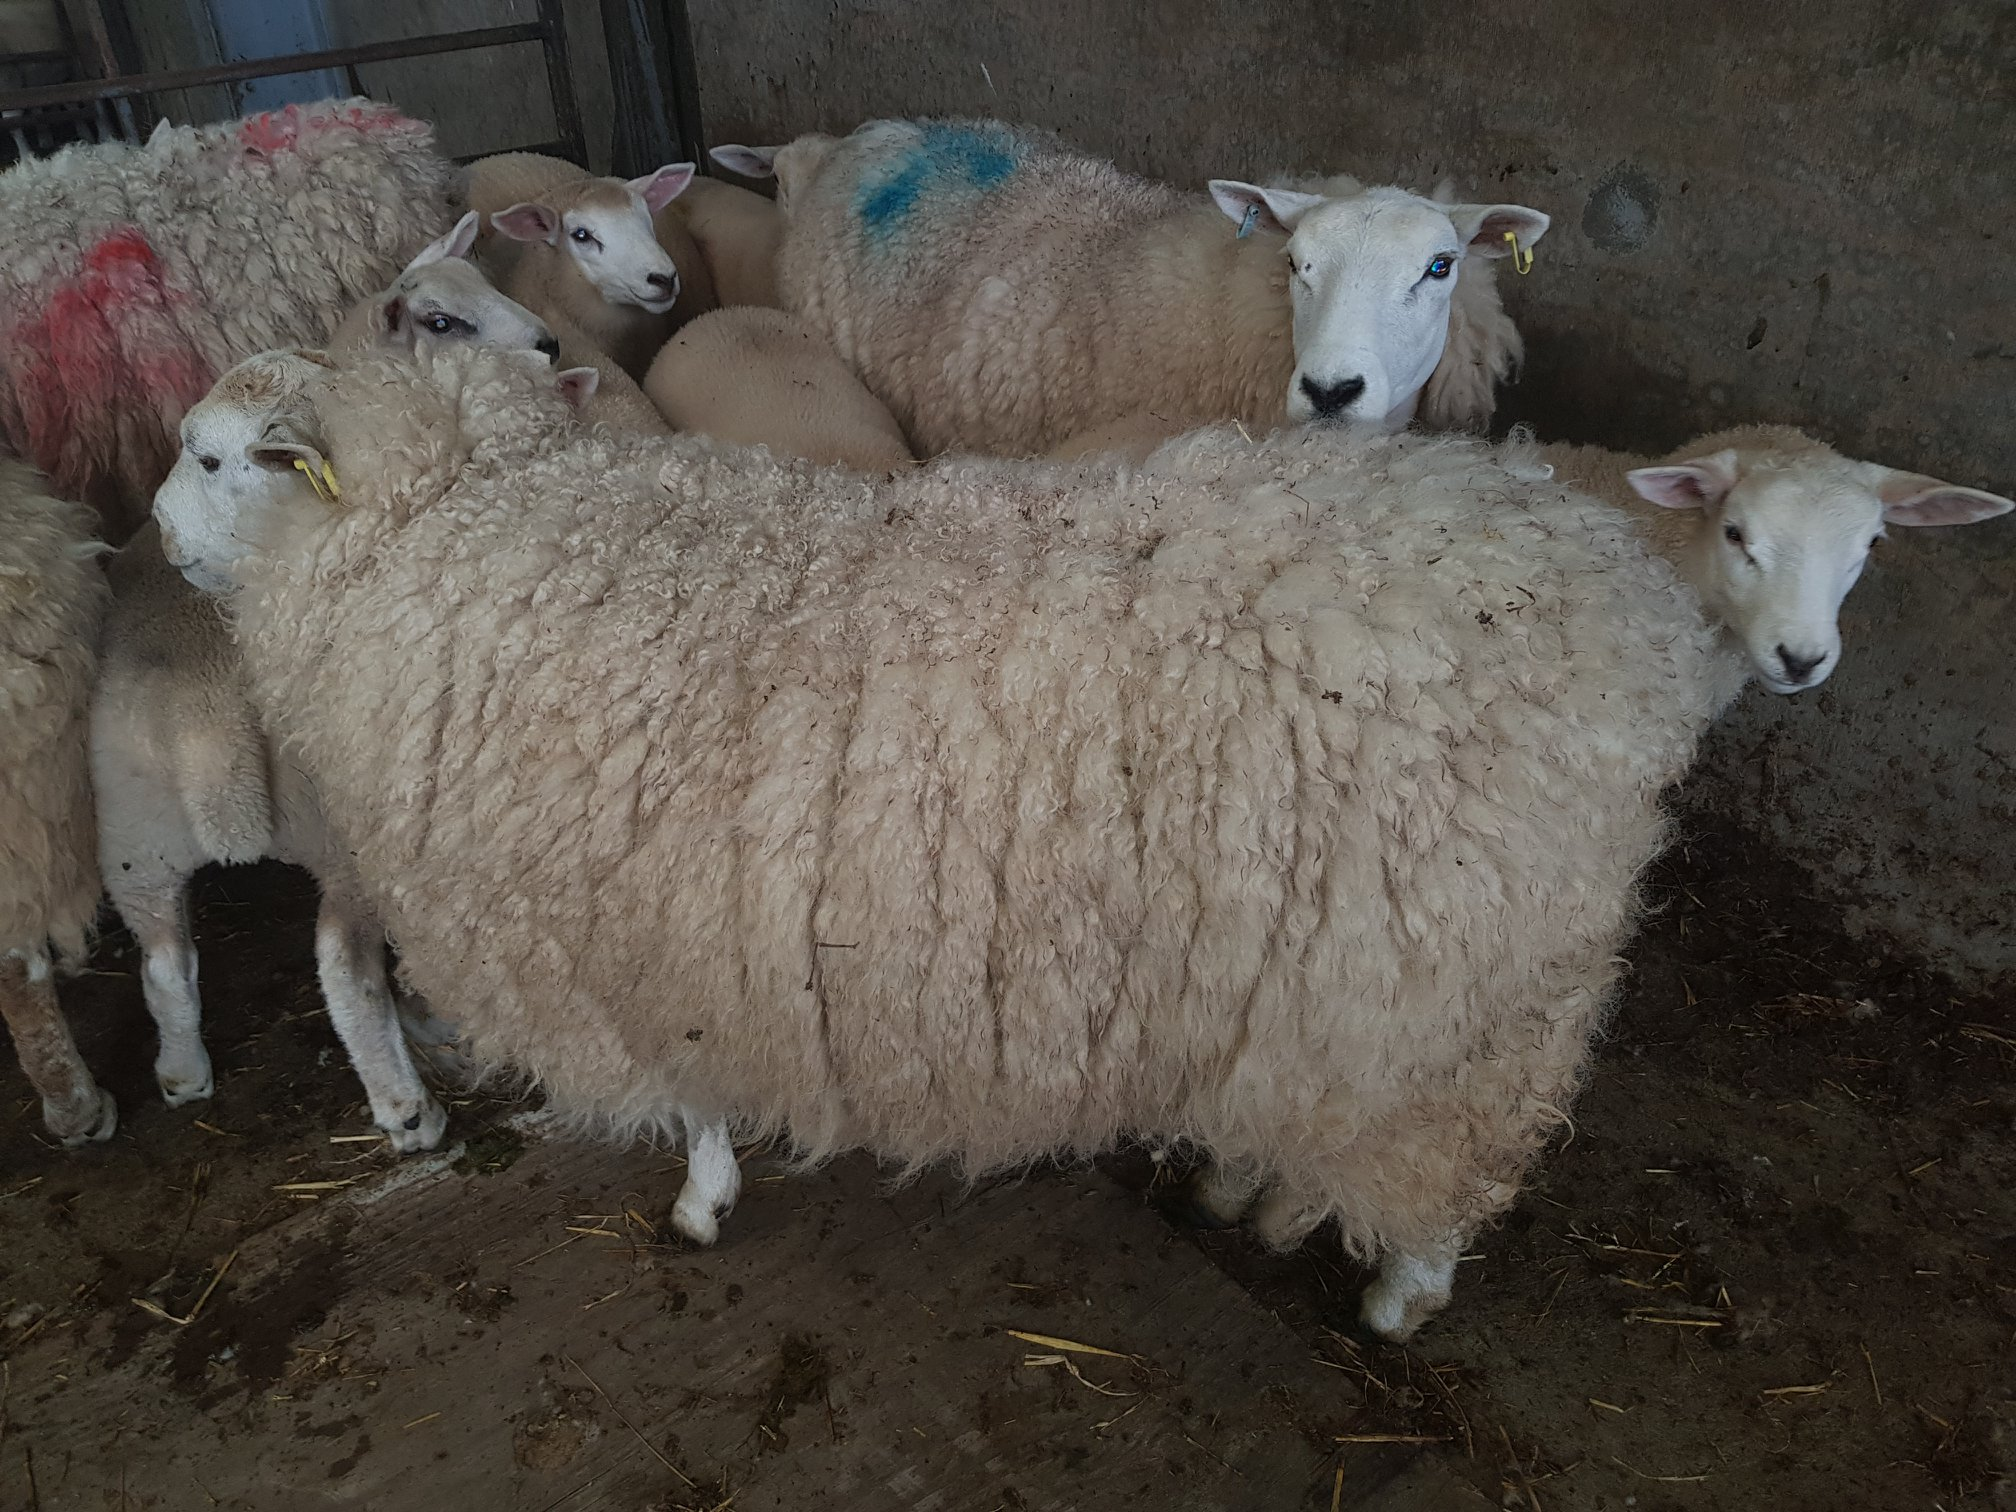 Shearing time at Perkhill. Our sheep were relieved to get thier fleeces cut last